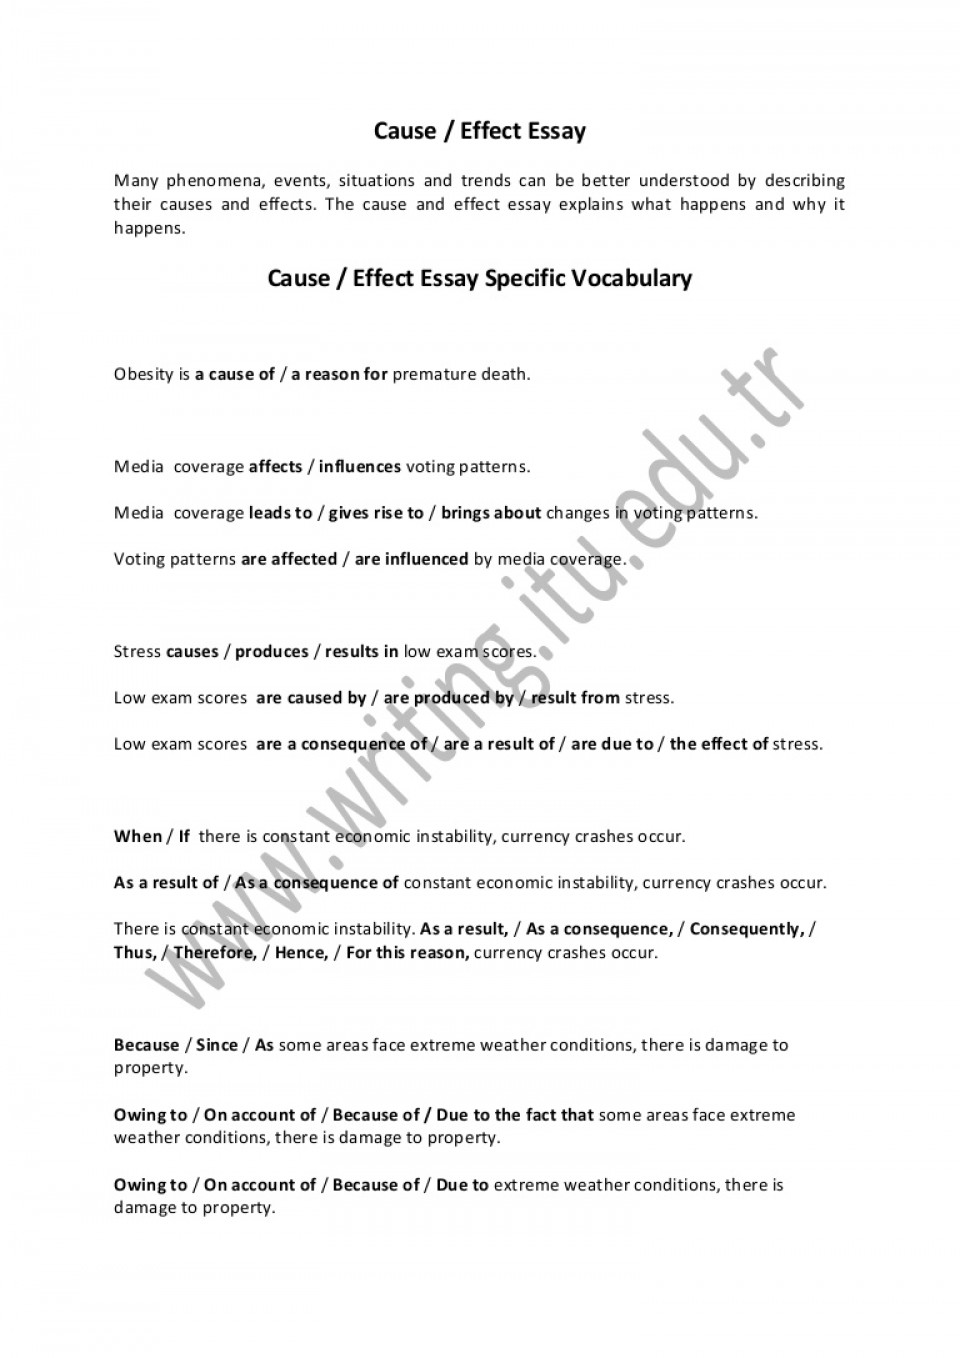 019 Essay Example Causeandeffectessay Thumbnail Cause And Effect Amazing Examples Free Pdf Writing 960